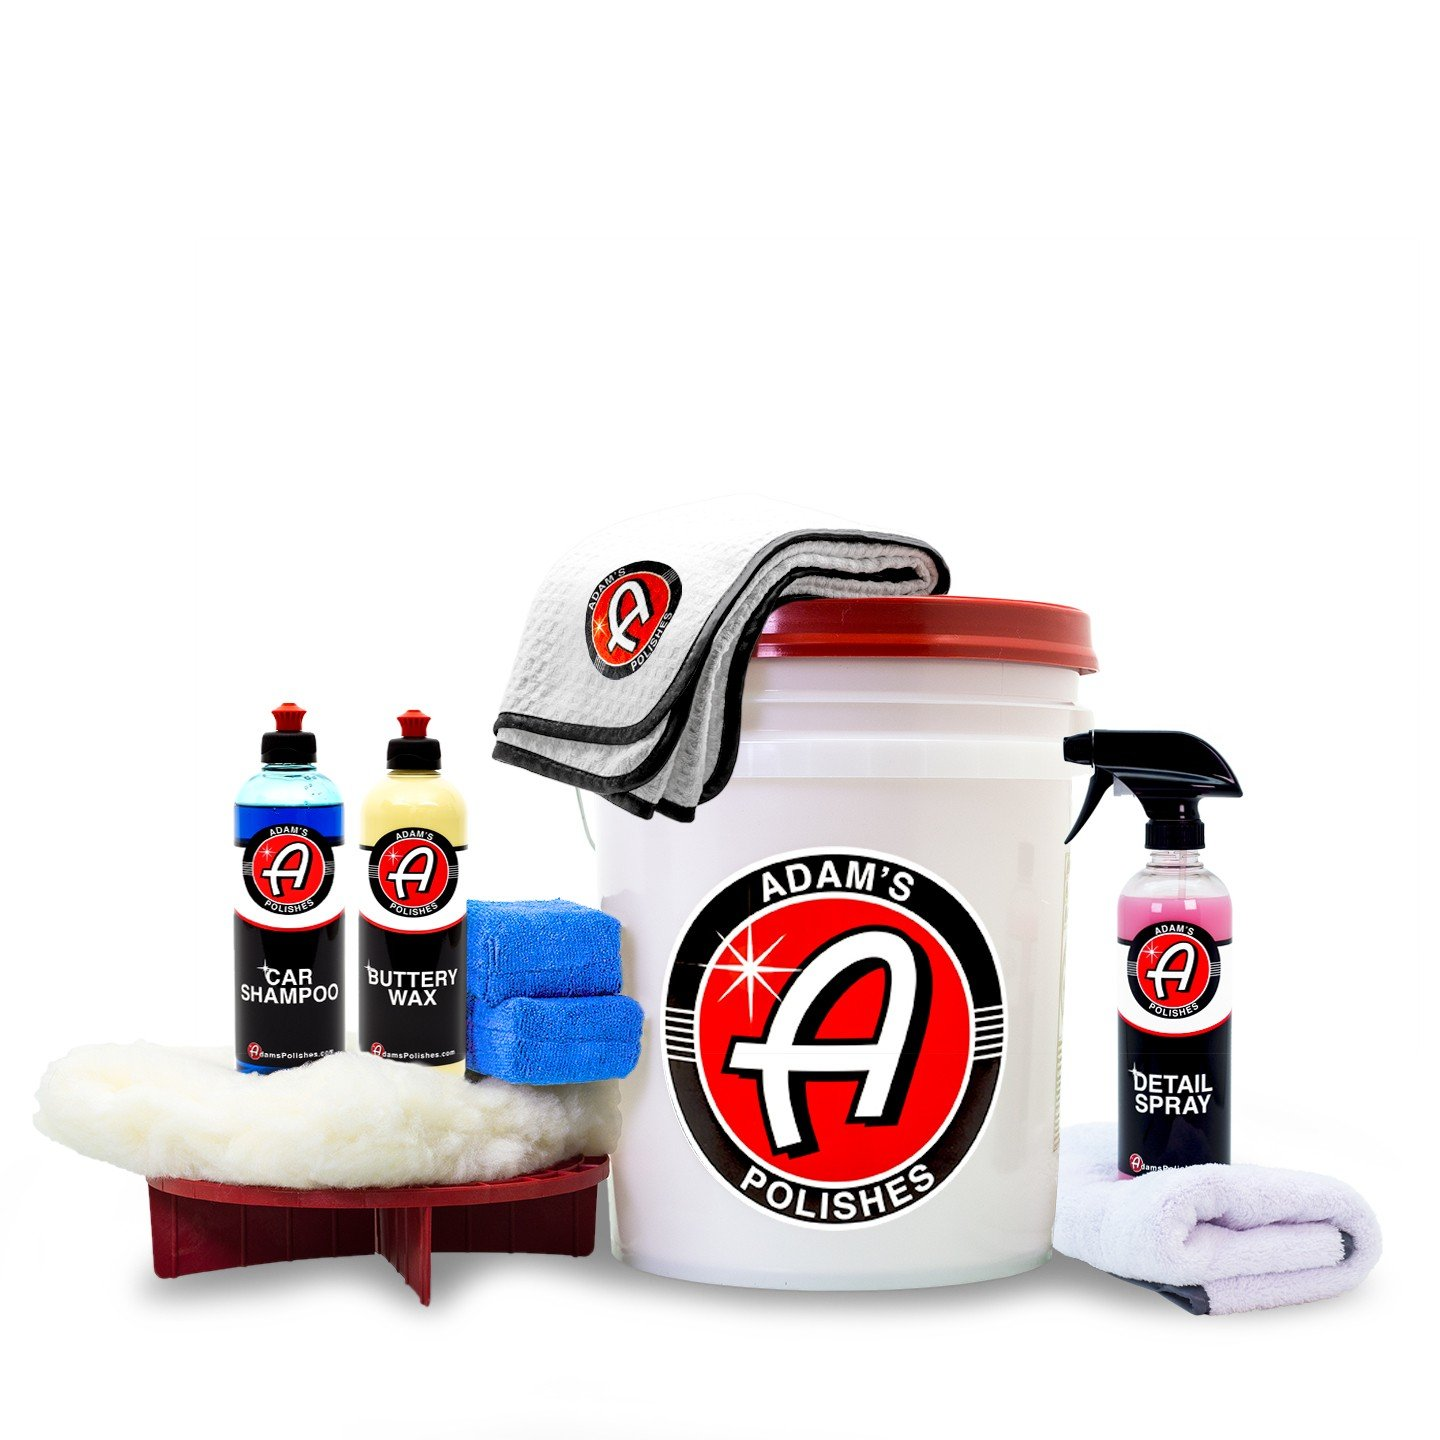 Adam's Basic Wash & Wax Kit - Car Shampoo Foam Soap, Buttery Wax, Microfiber Applicators, Drying & Waxing Towels, Wash Bucket and More Car Cleaning Supplies to Polish & Protect Car, Boat & Motorcycle